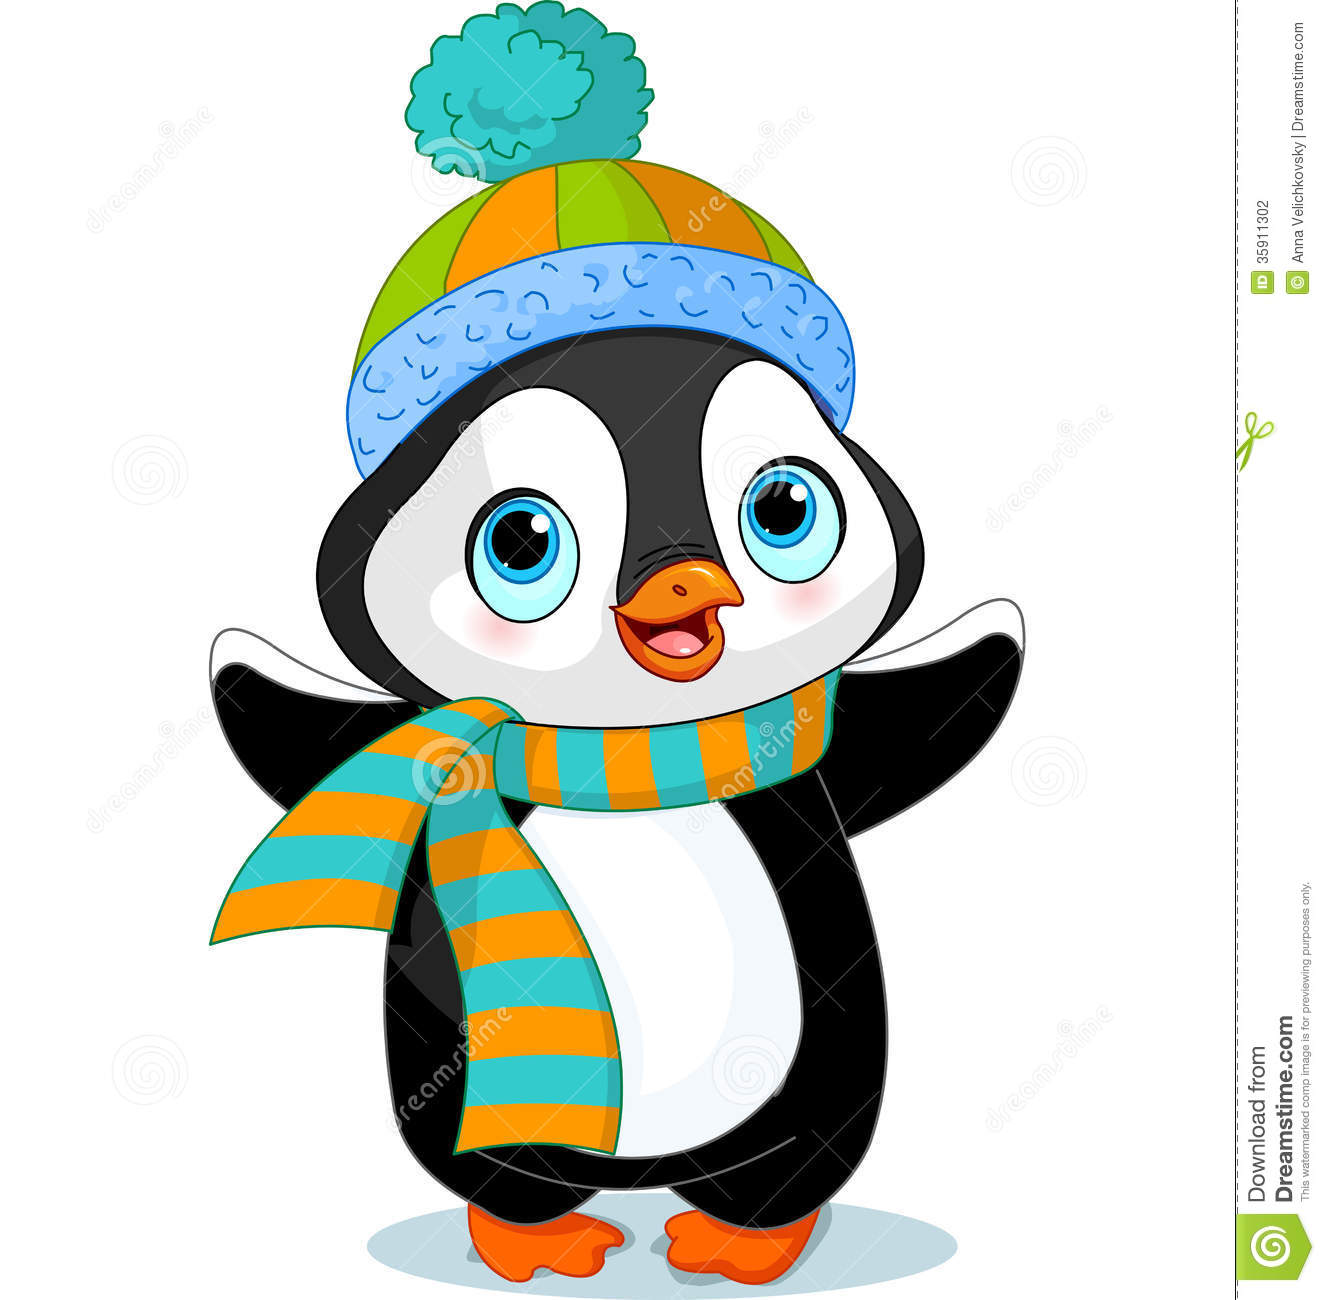 Cute winter penguin stock vector. Illustration of artworks ...